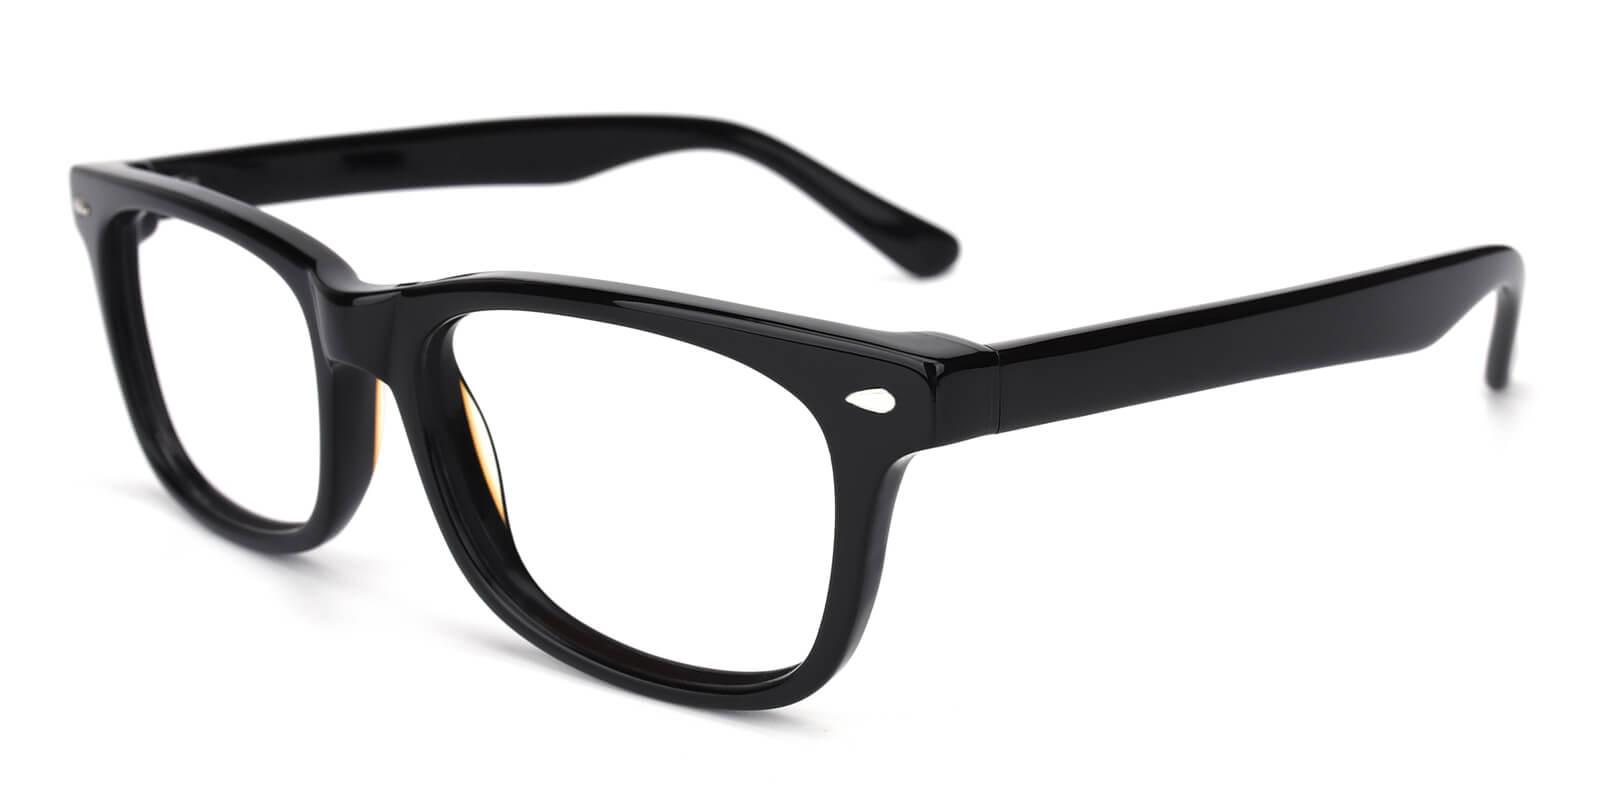 Bladeen-Black-Rectangle-Acetate-Eyeglasses-additional1